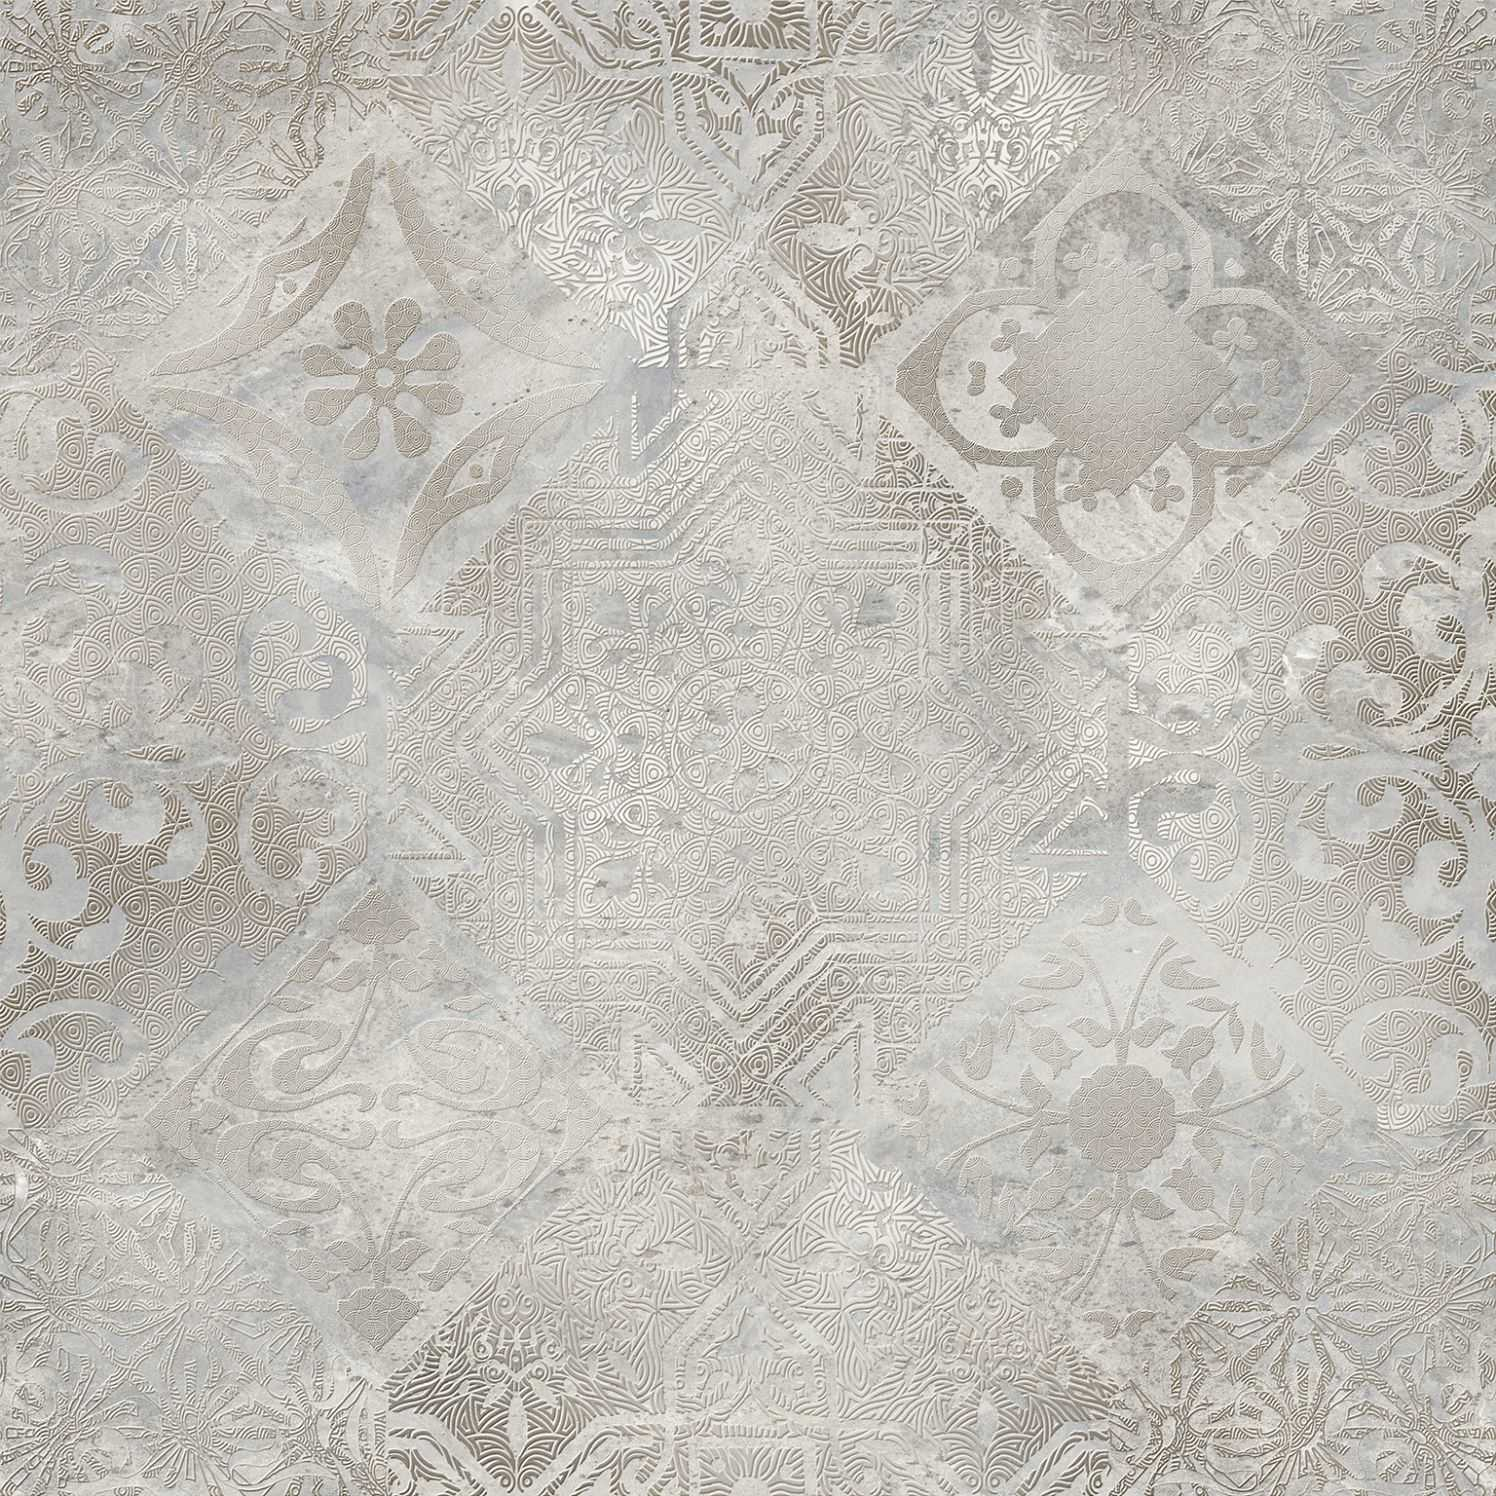 Decor mix 3-8 Lappato ABS2667